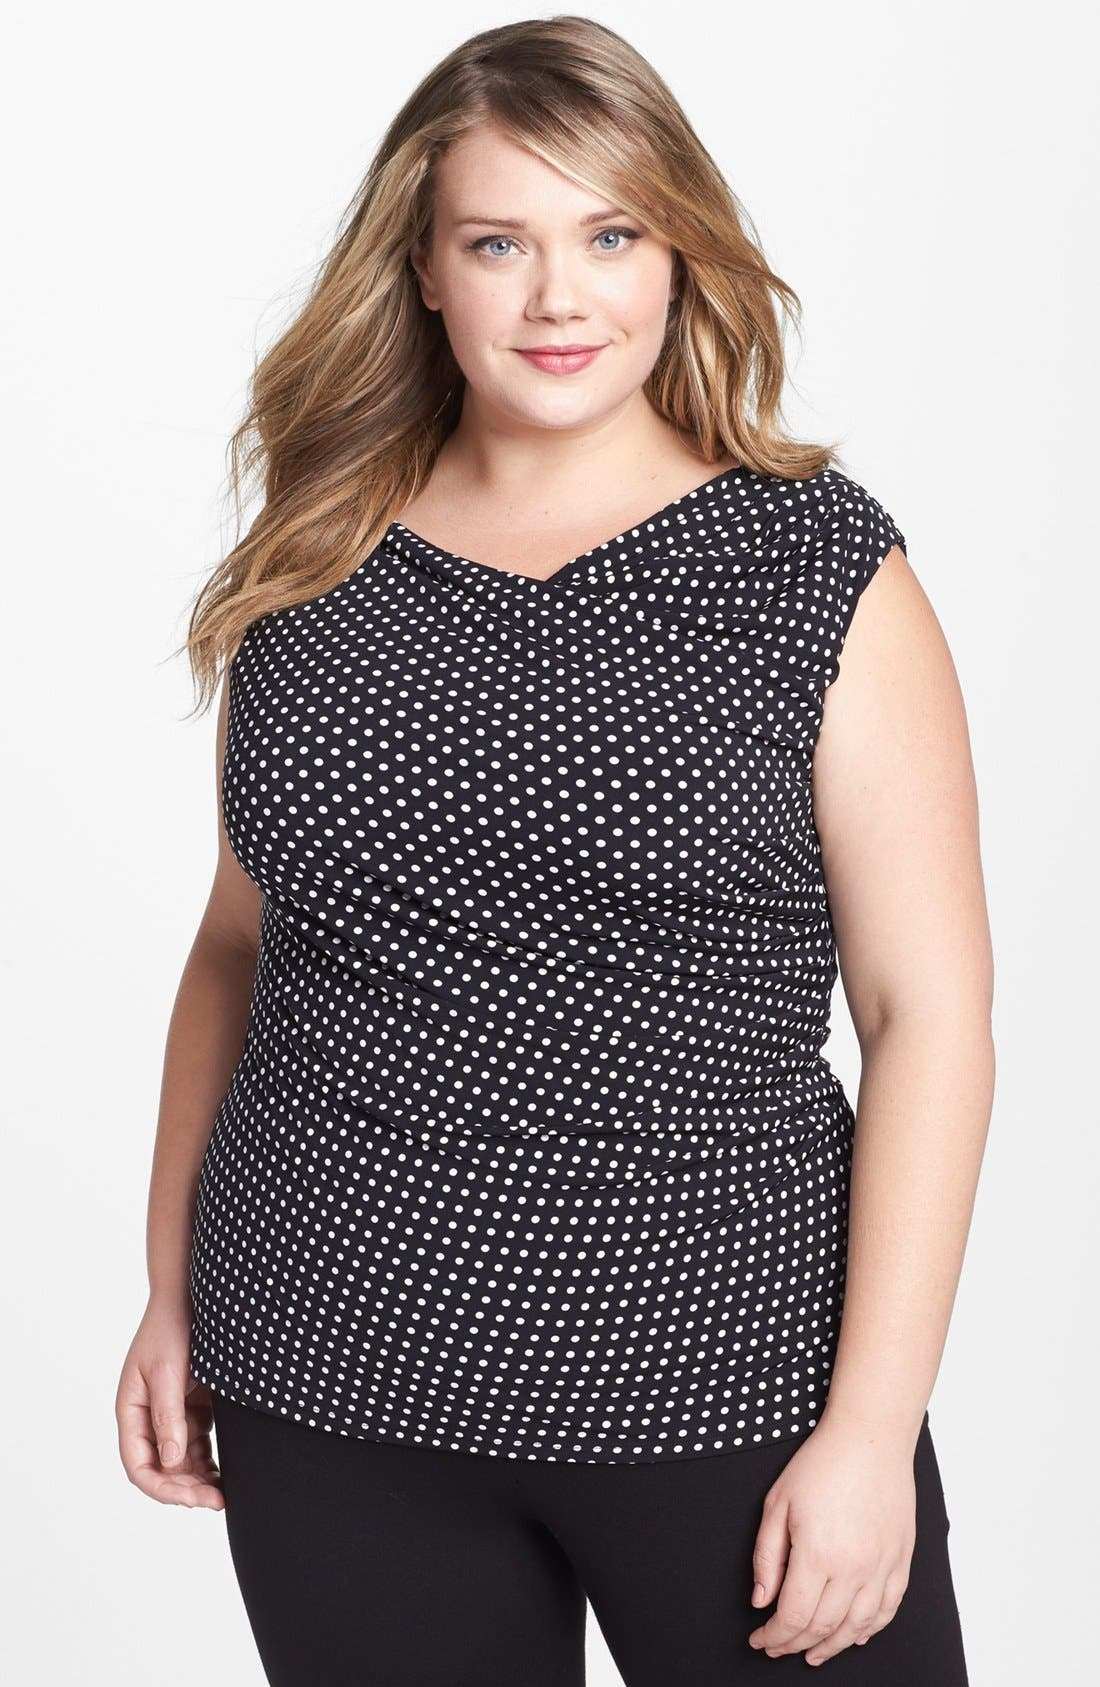 Main Image - Vince Camuto Ruched Polka Dot Top (Plus Size)